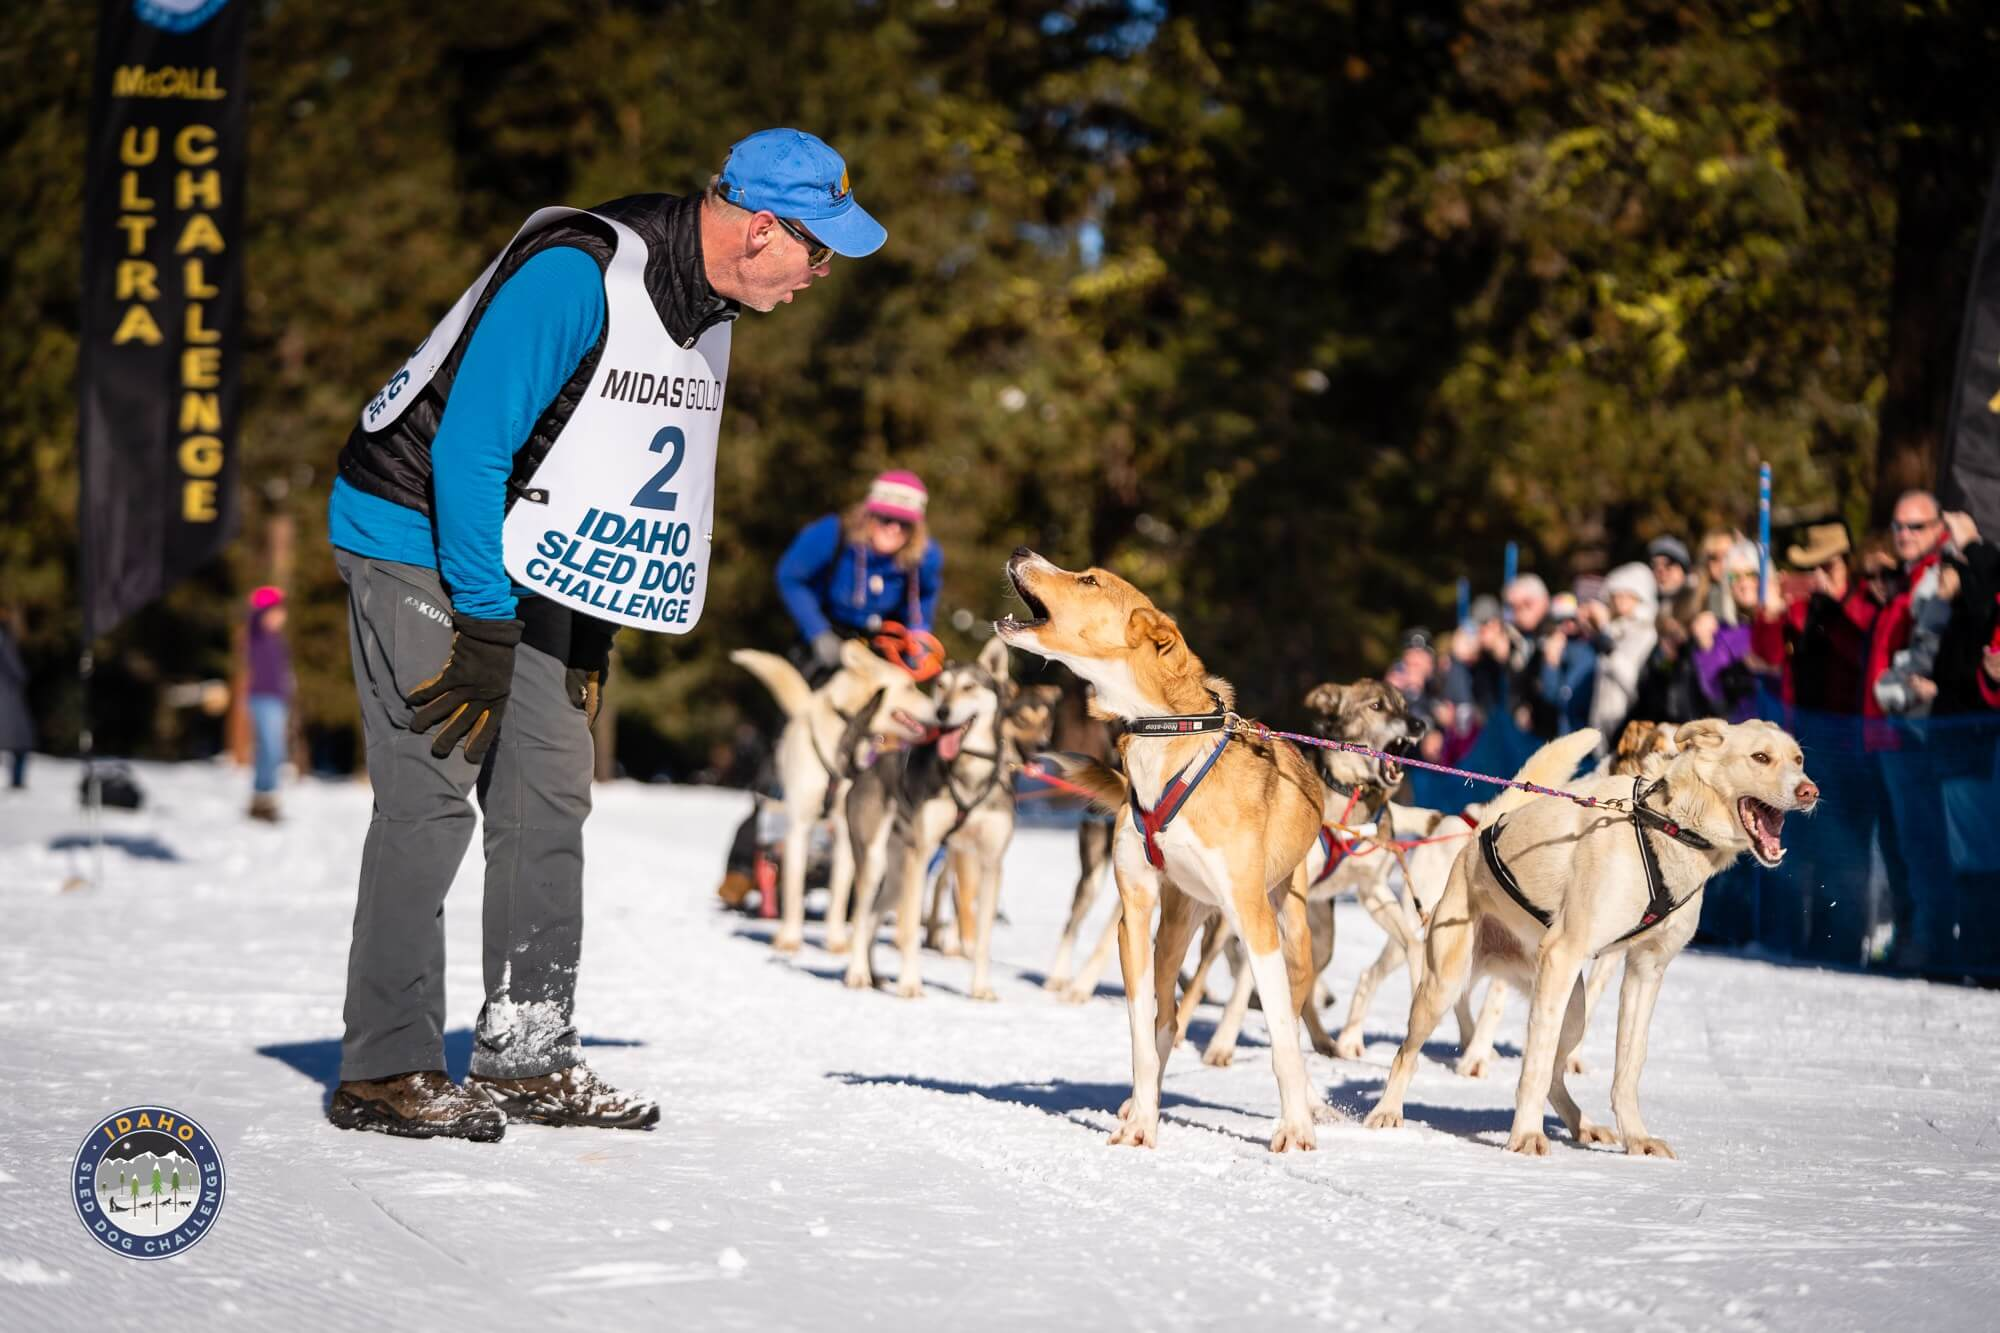 Idaho Dog Sled Challenge McCall Winter Carnival